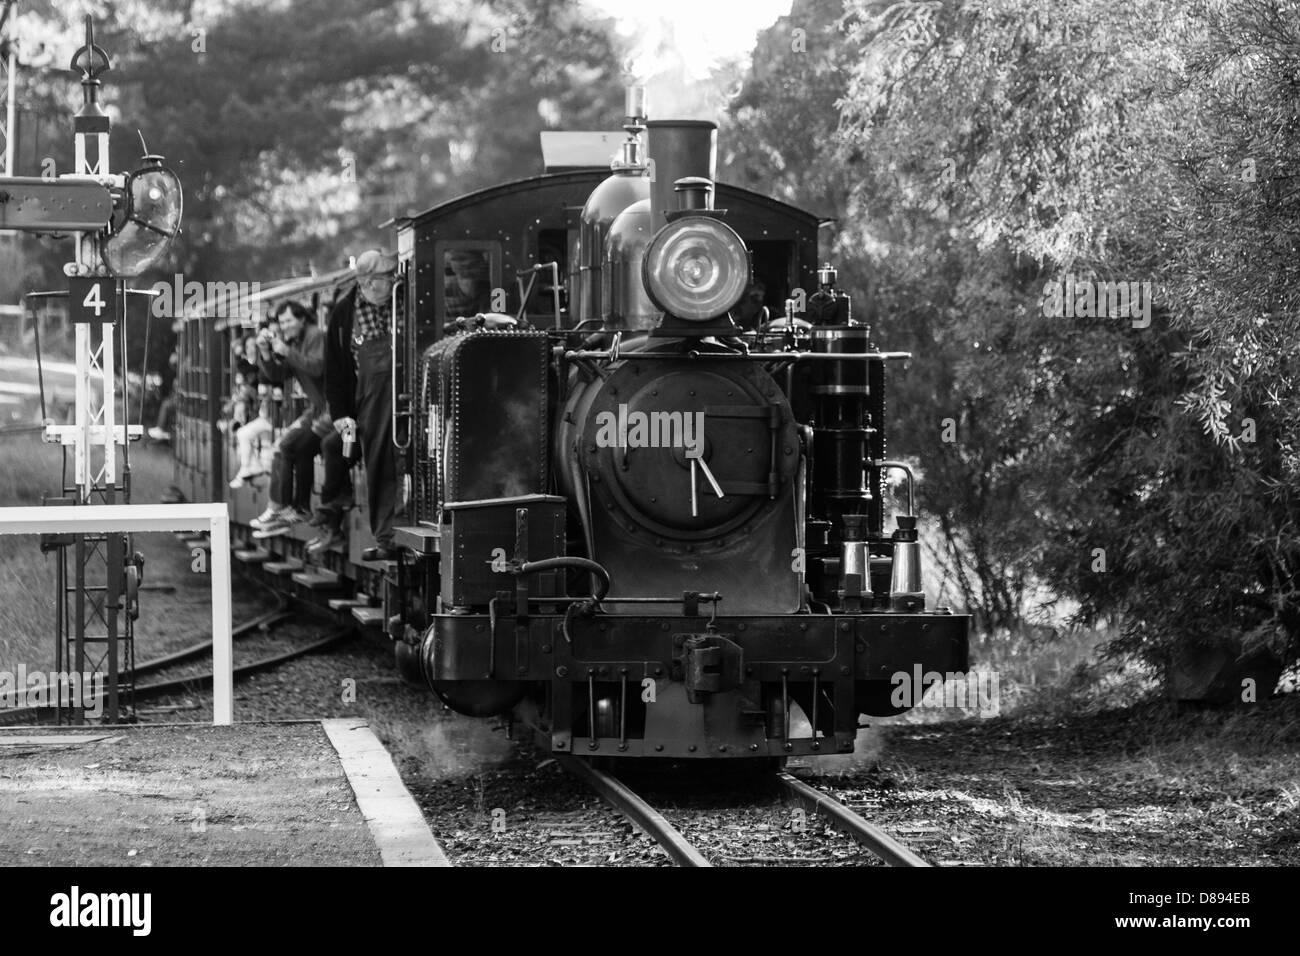 Puffing Billy steam trains comes to a stop in Melbourne, Victoria, Australia - Stock Image